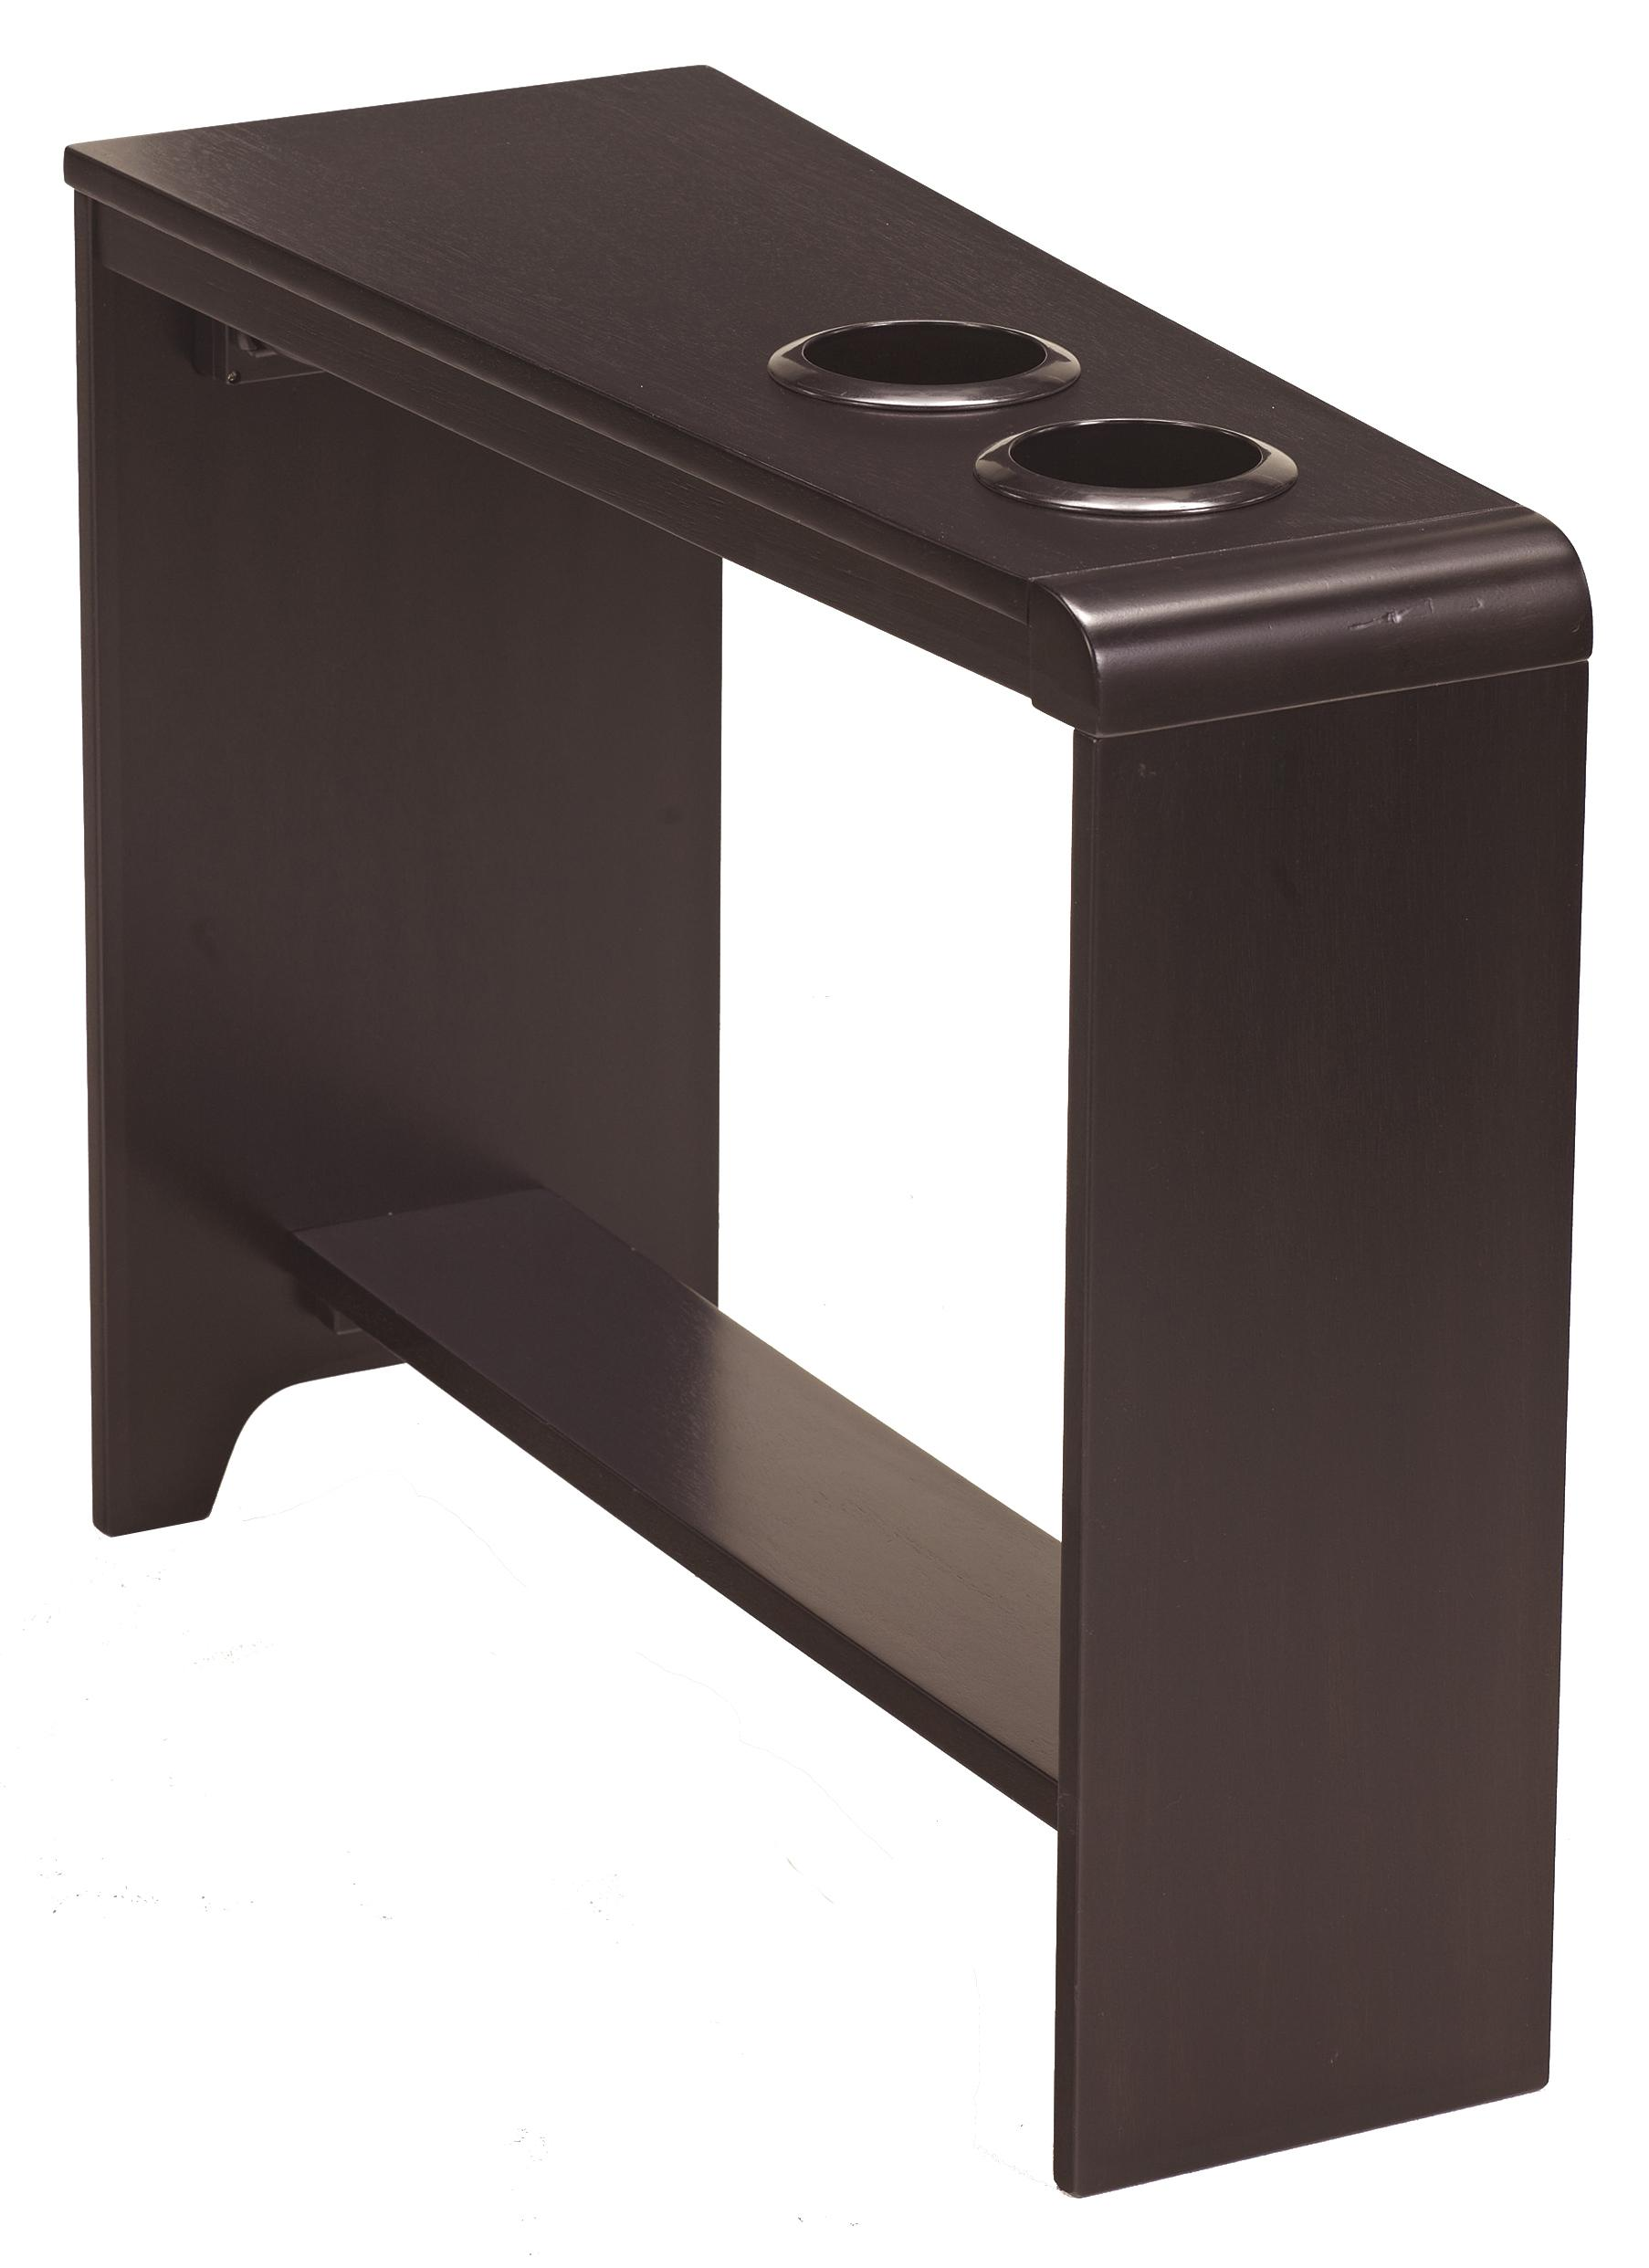 Signature Design by Ashley Carlyle Chair Side End Table - Item Number: T771-07